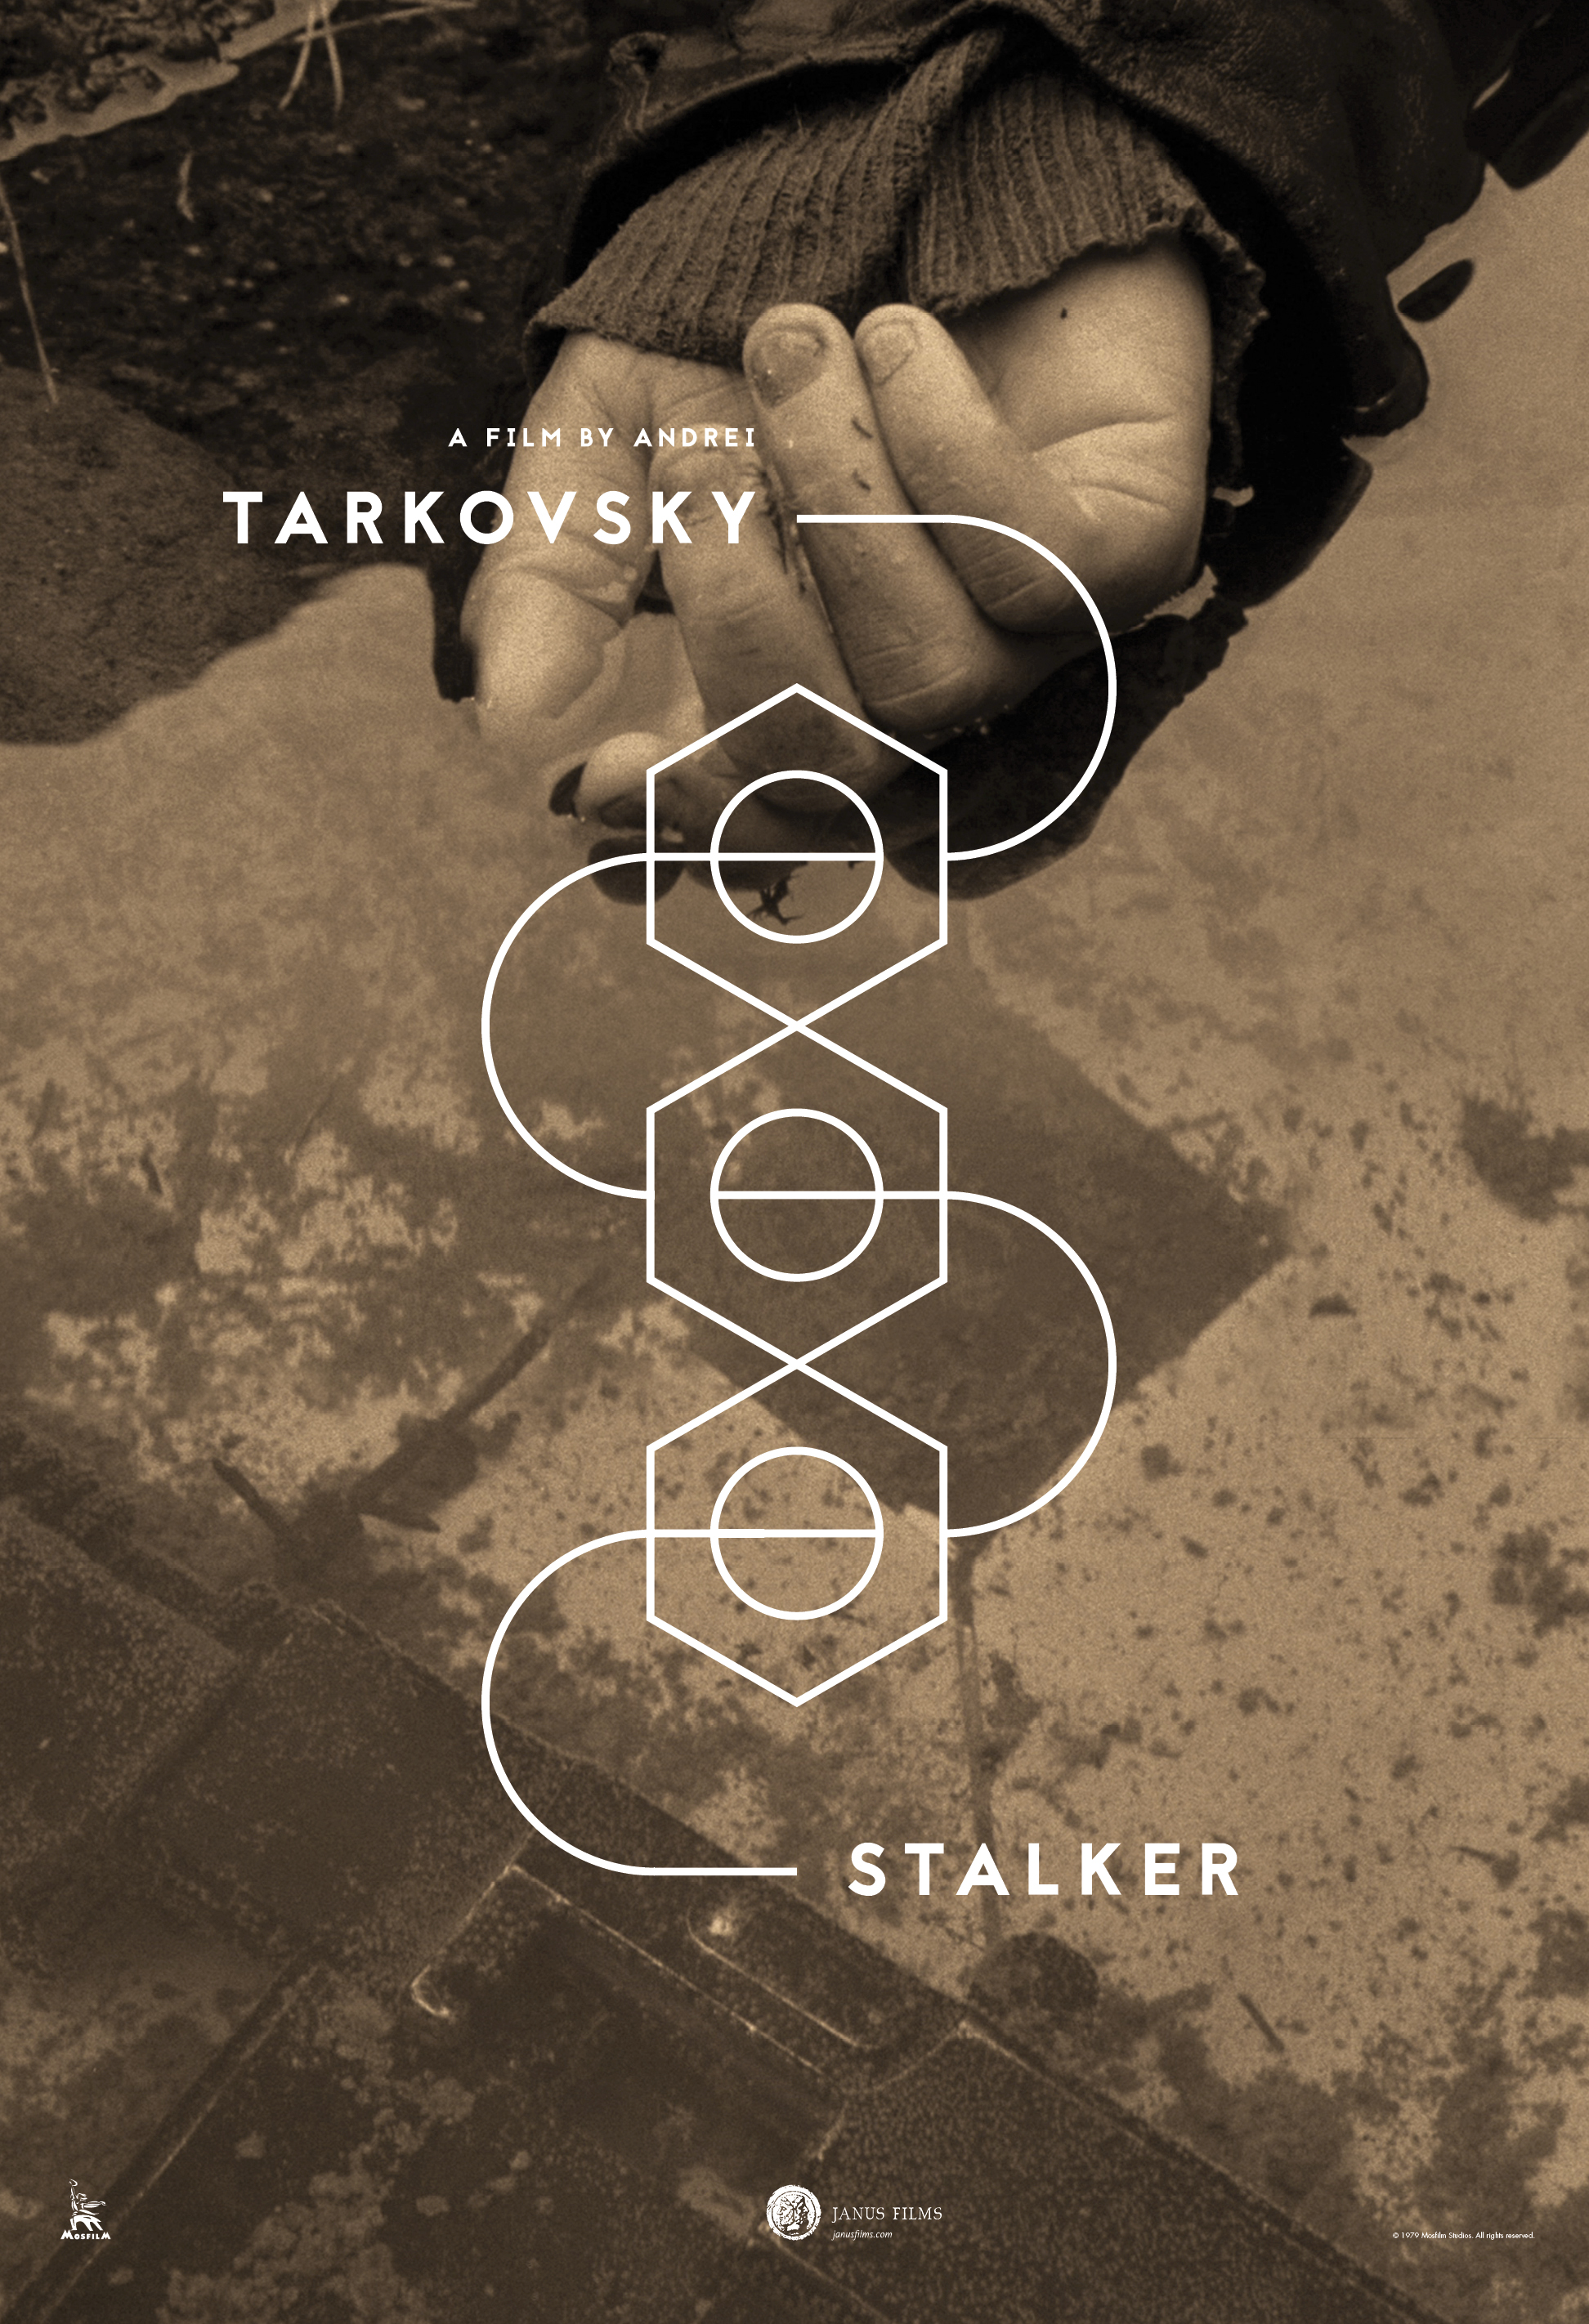 tarkovskys stalker as a political allegory Tarkovsky's stalker as a political allegory essay tarkovsky's  stalker  as a political allegory by eugene izraylit of all great poets of cinema, few are regarded higher than andrei tarkovsky.